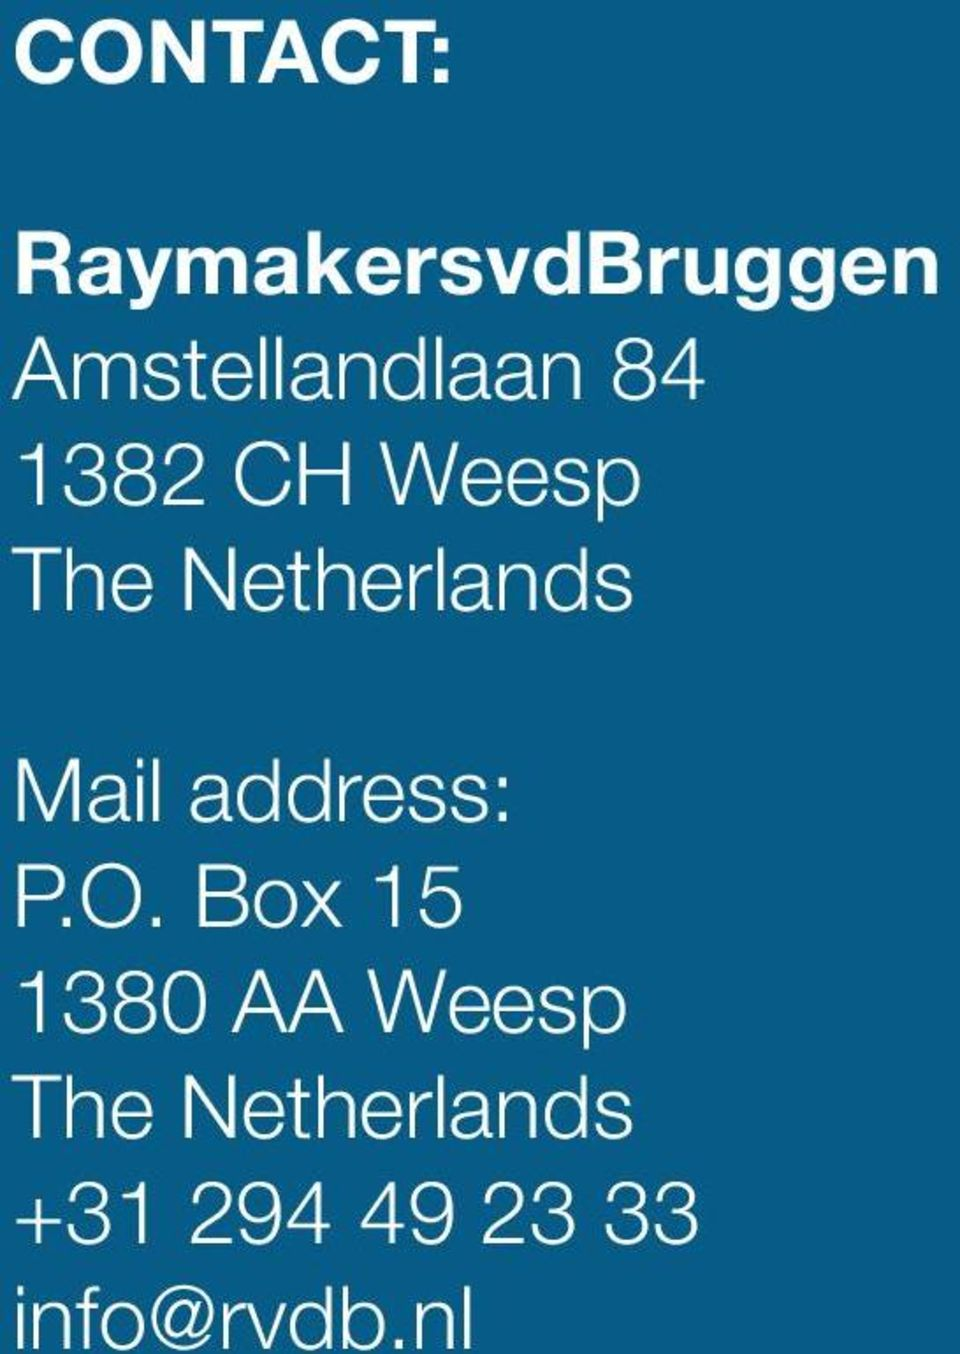 Netherlands Mail address: P.O.